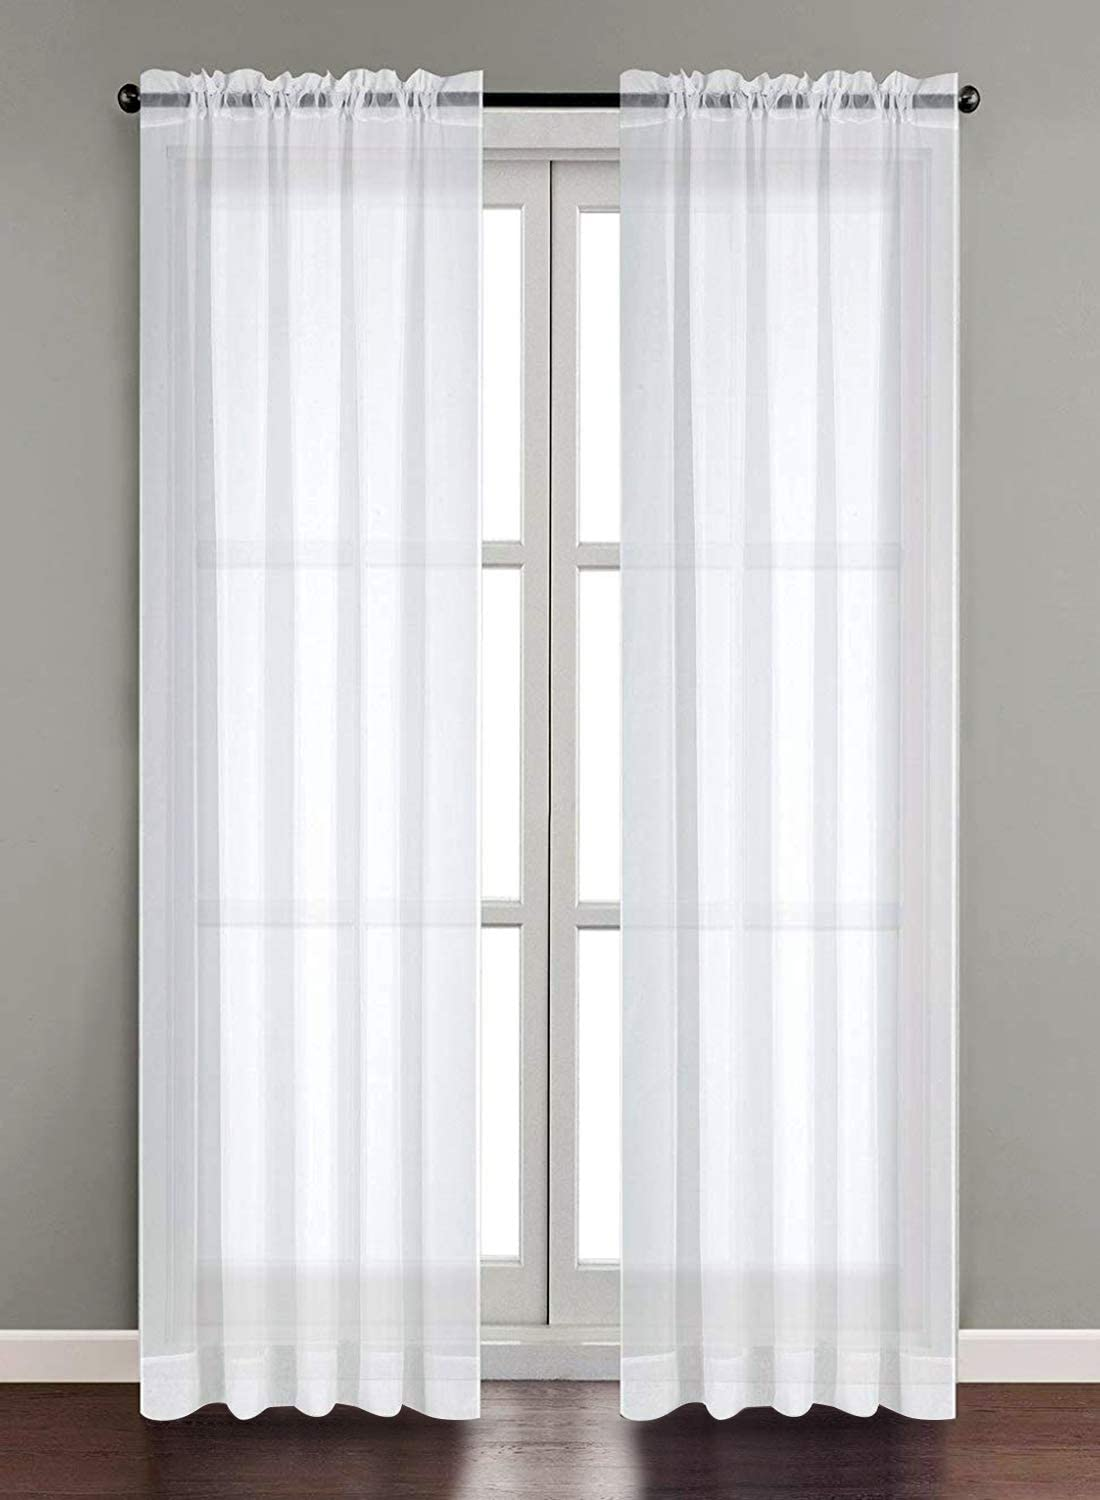 Amazon.com: Utopia Bedding 2 Panels White Sheer Curtains, W54 X